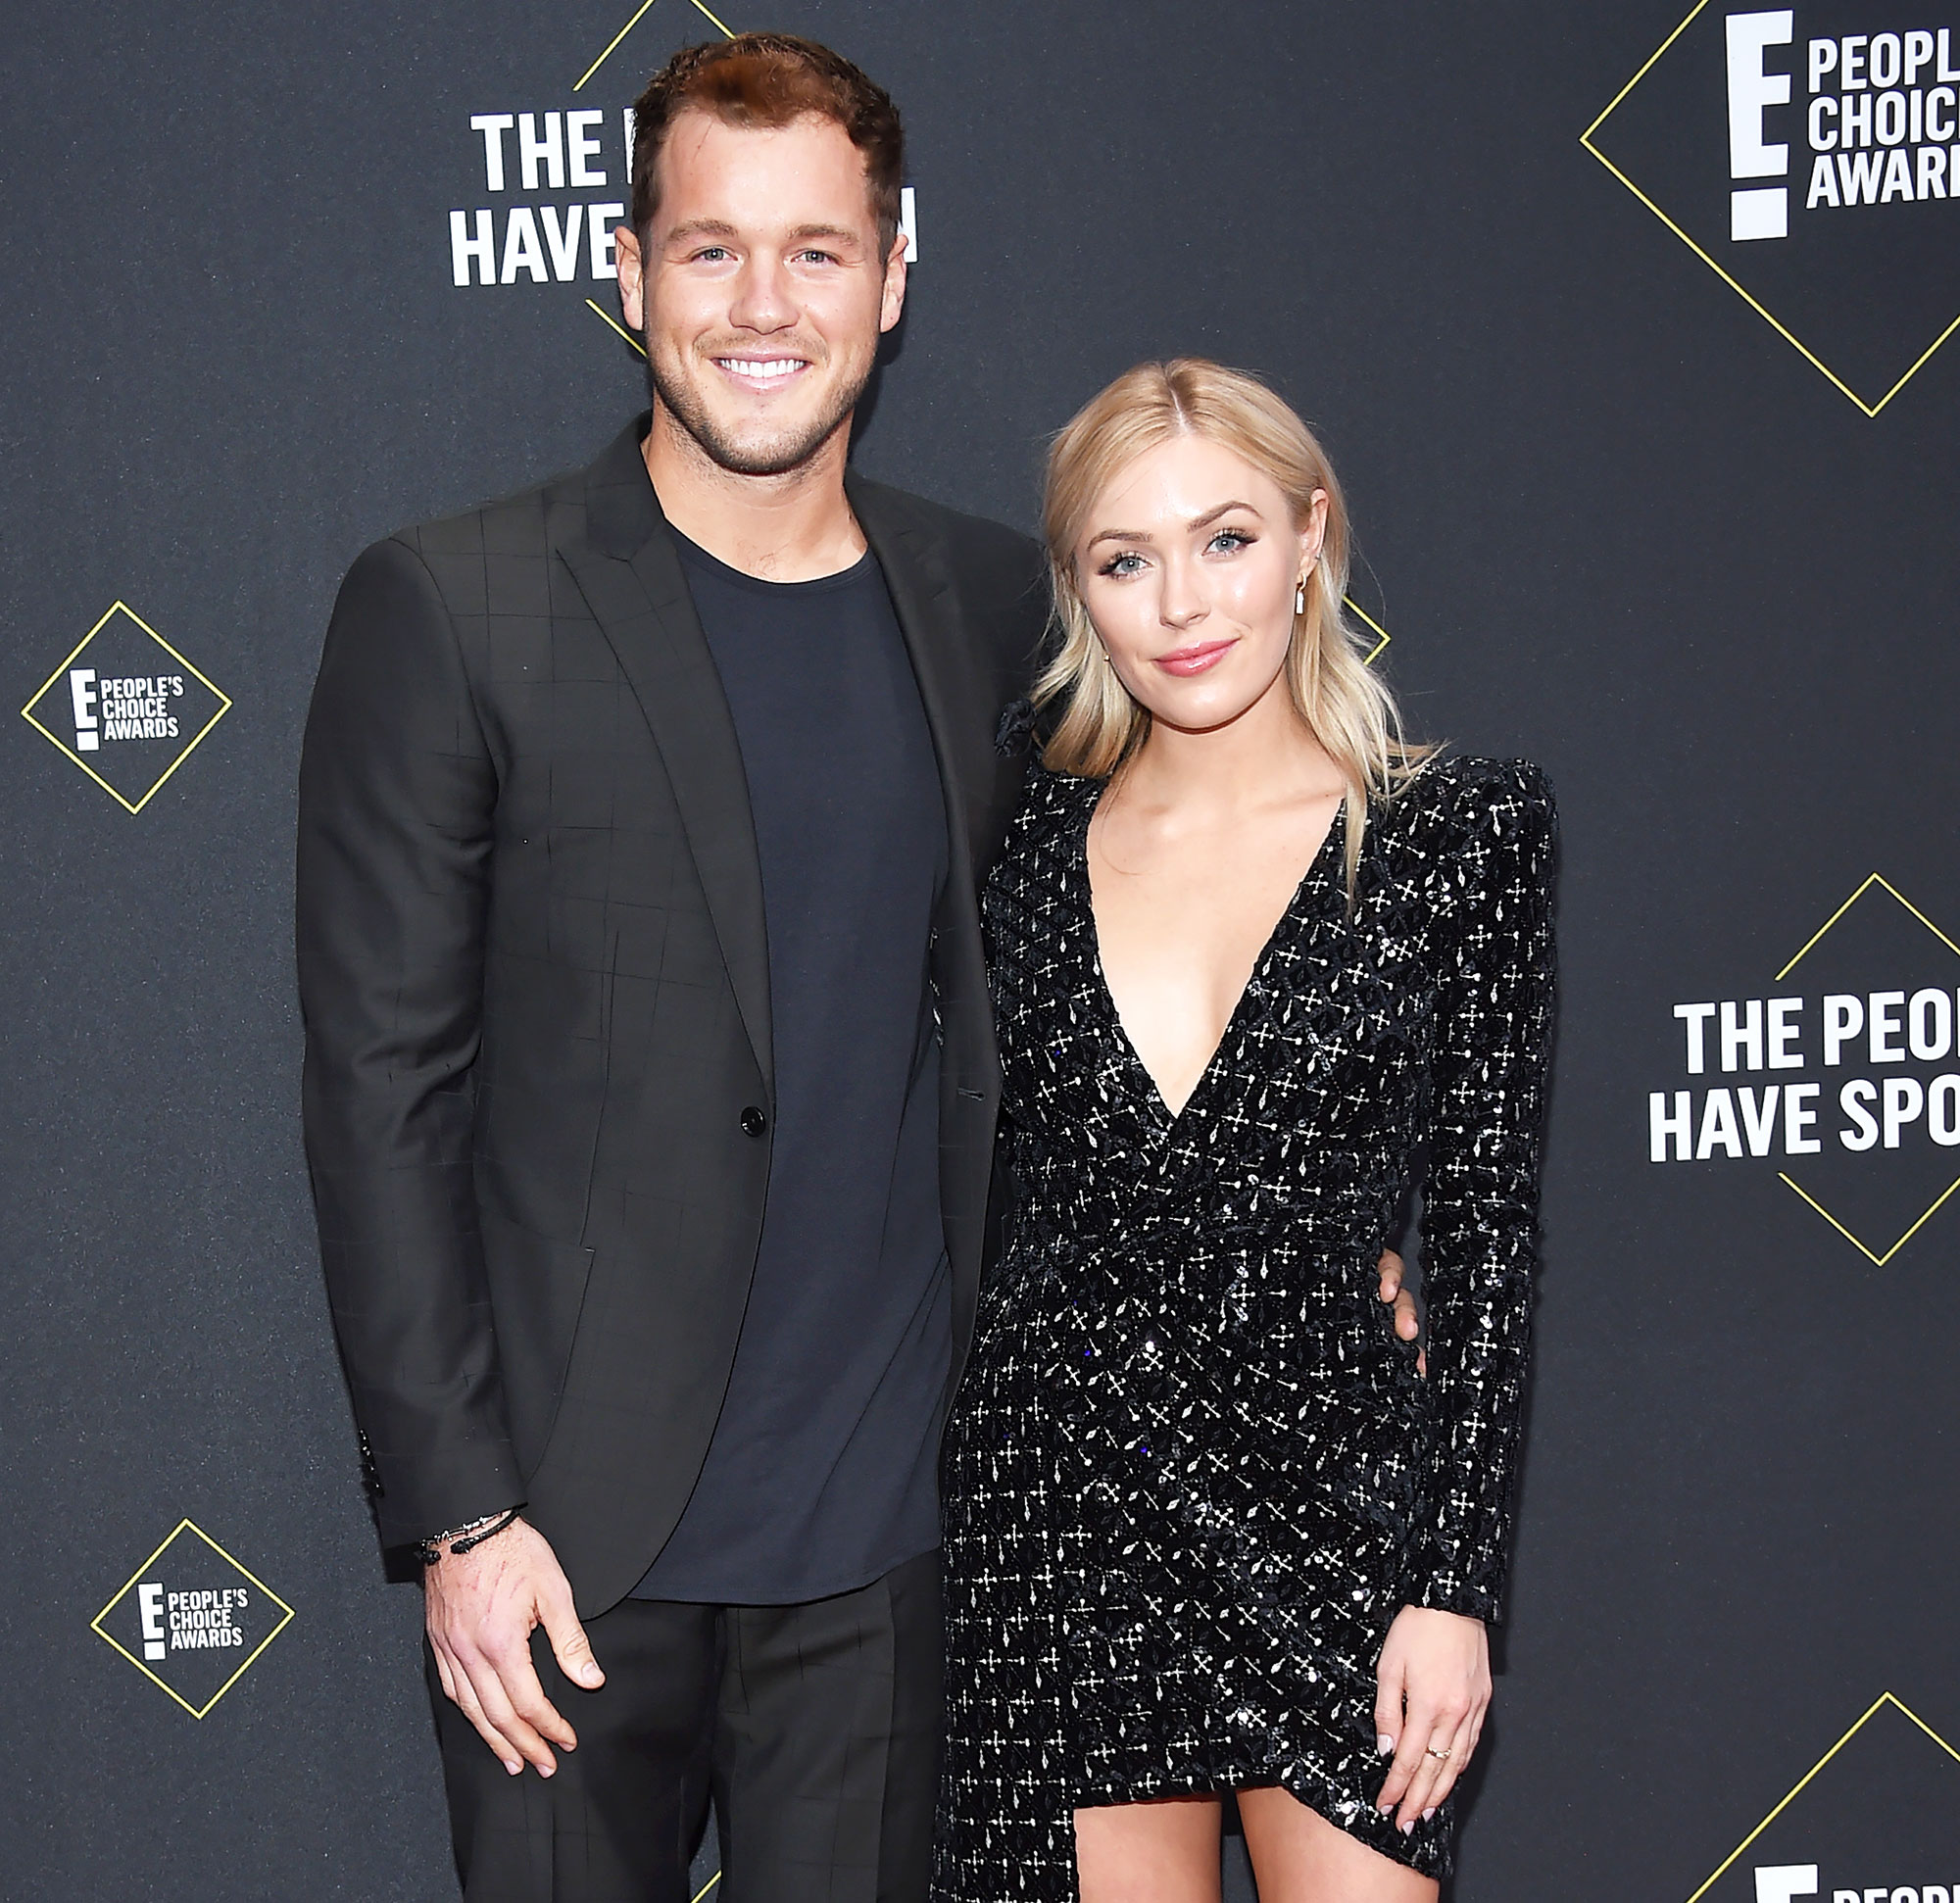 Colton Underwood and Cassie Randolph Agreed to Handle Our Split Privately